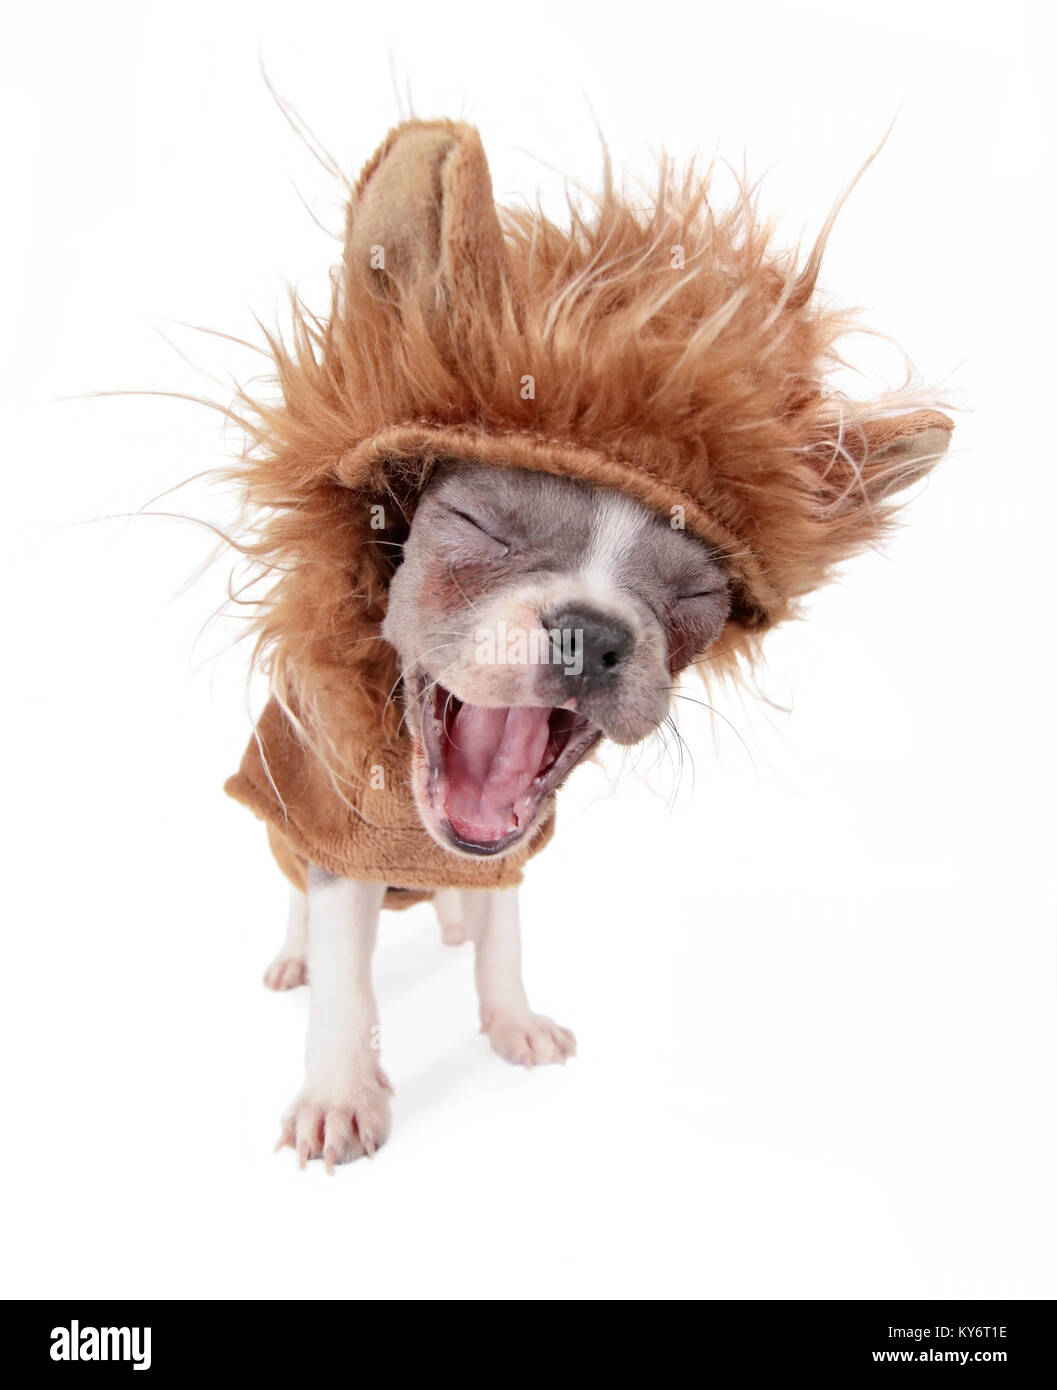 photo of a cute french bulldog puppy in a lion costume yawning or barking studio shot on an isolated white background - Stock Image